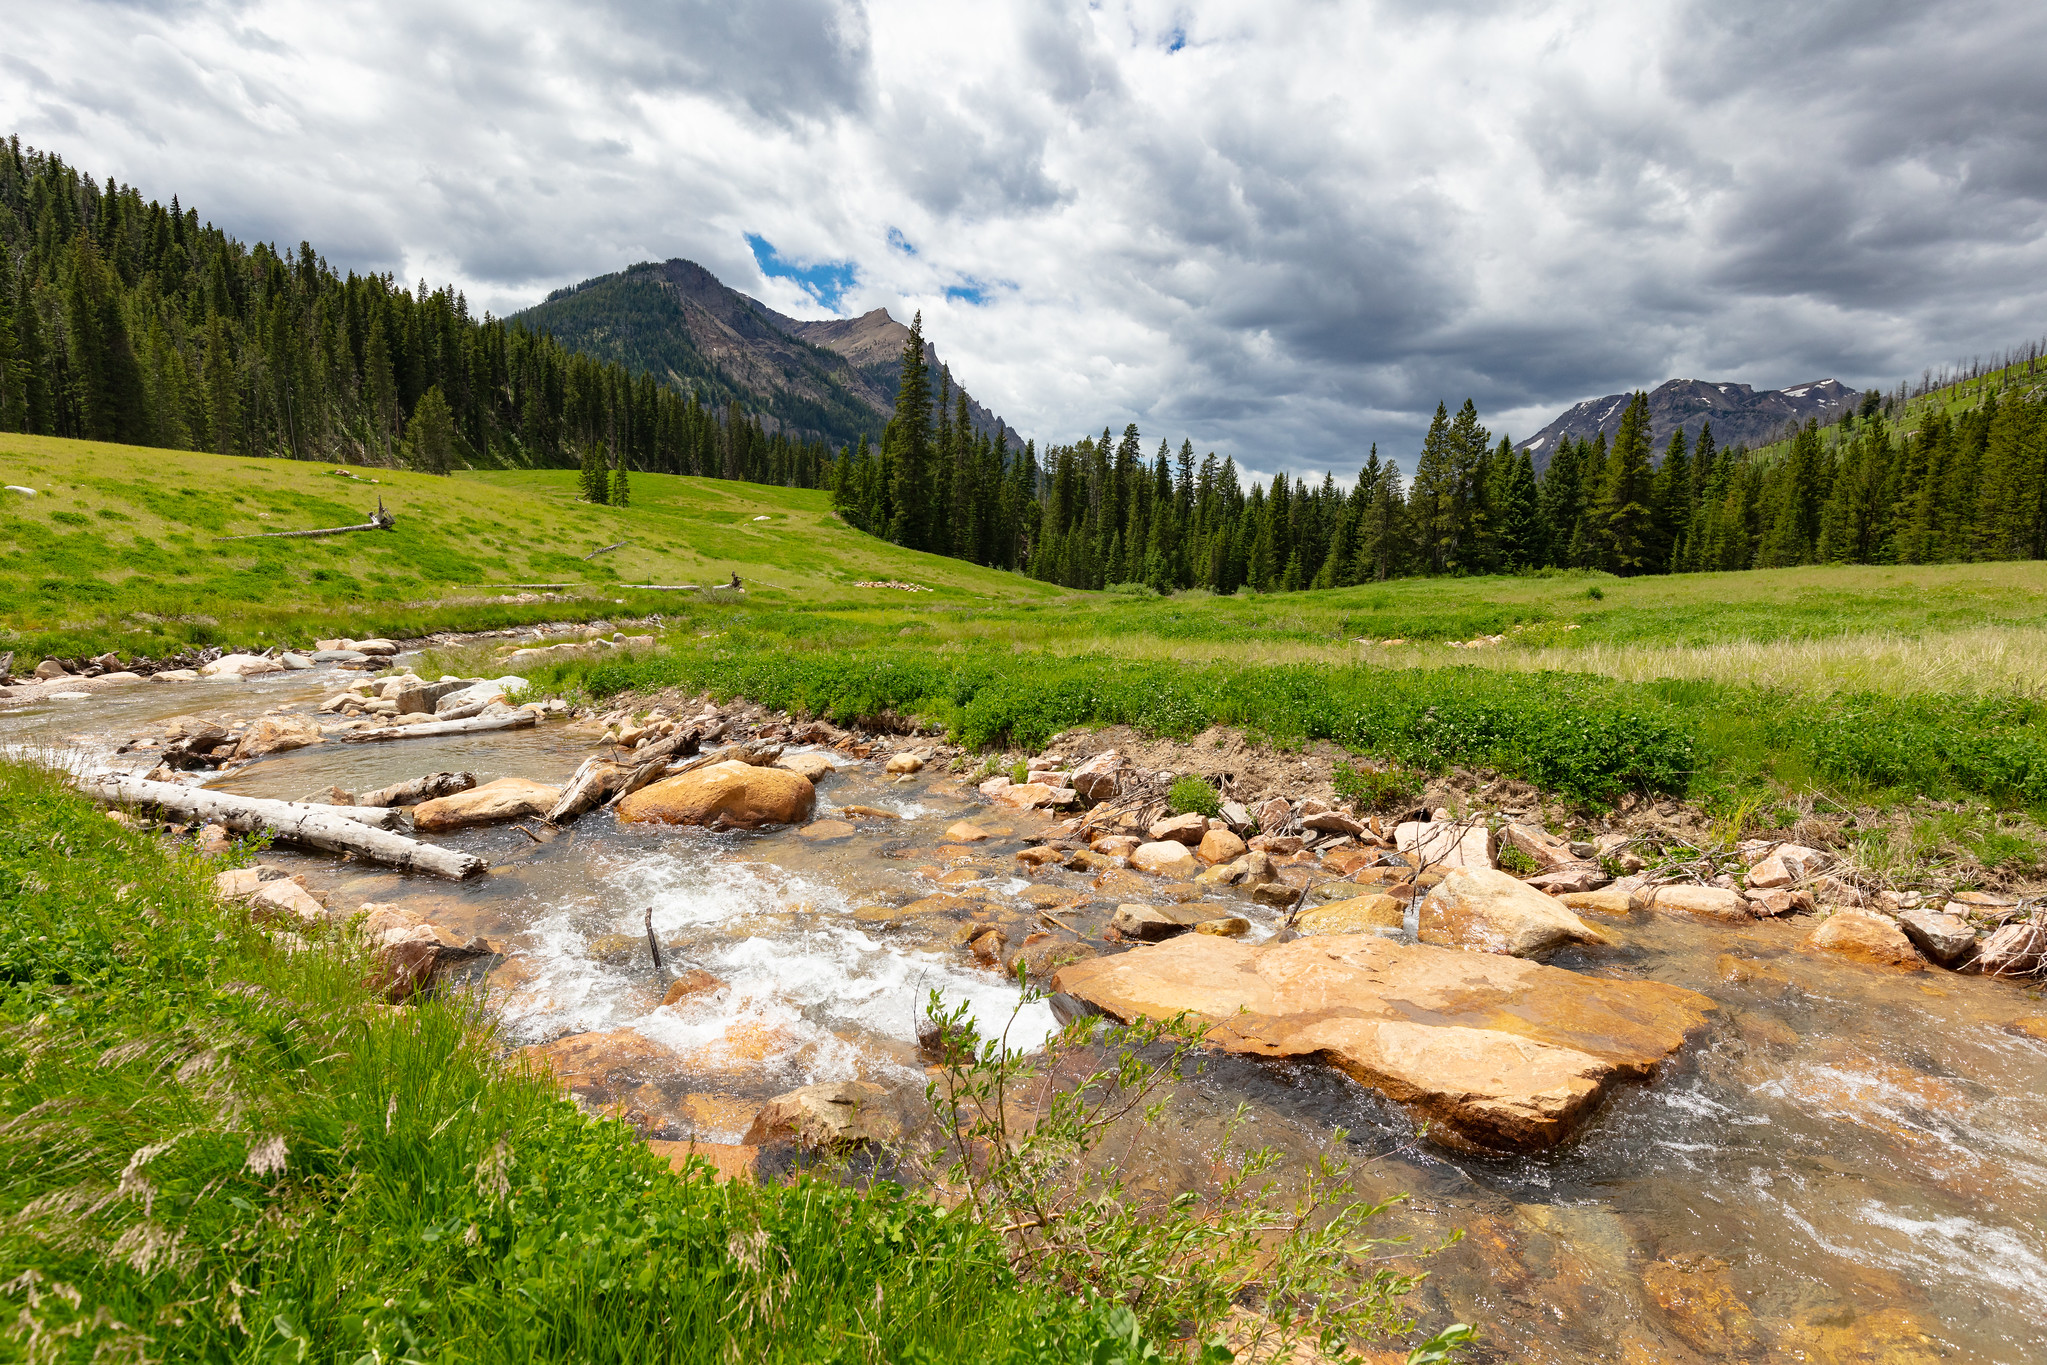 Free download high resolution image - free image free photo free stock image public domain picture -Soda Butte Creek McLaren Mine